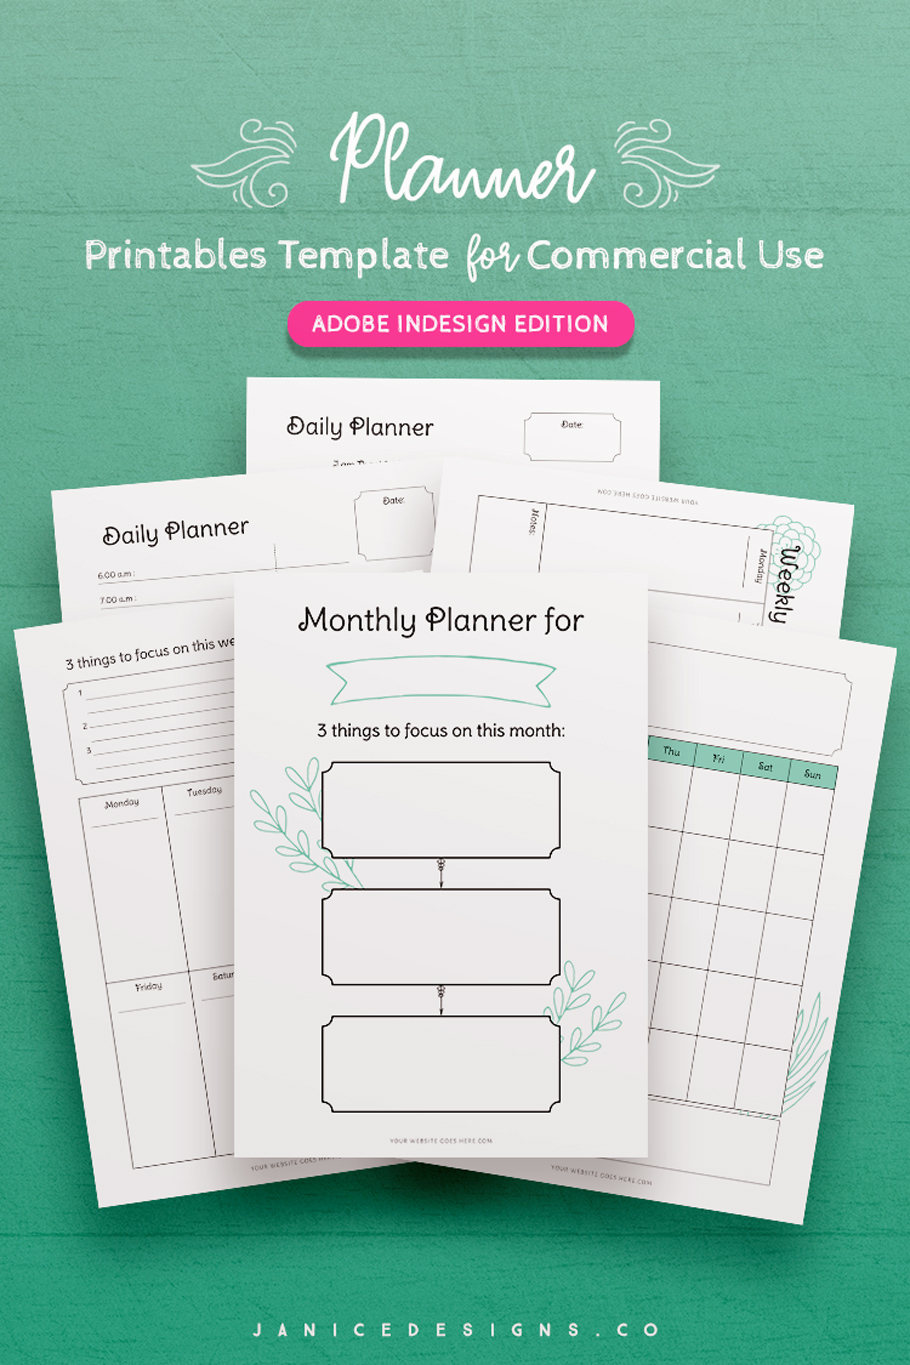 7-in-1 Bundle InDesign Templates for Commercial Use example image 6